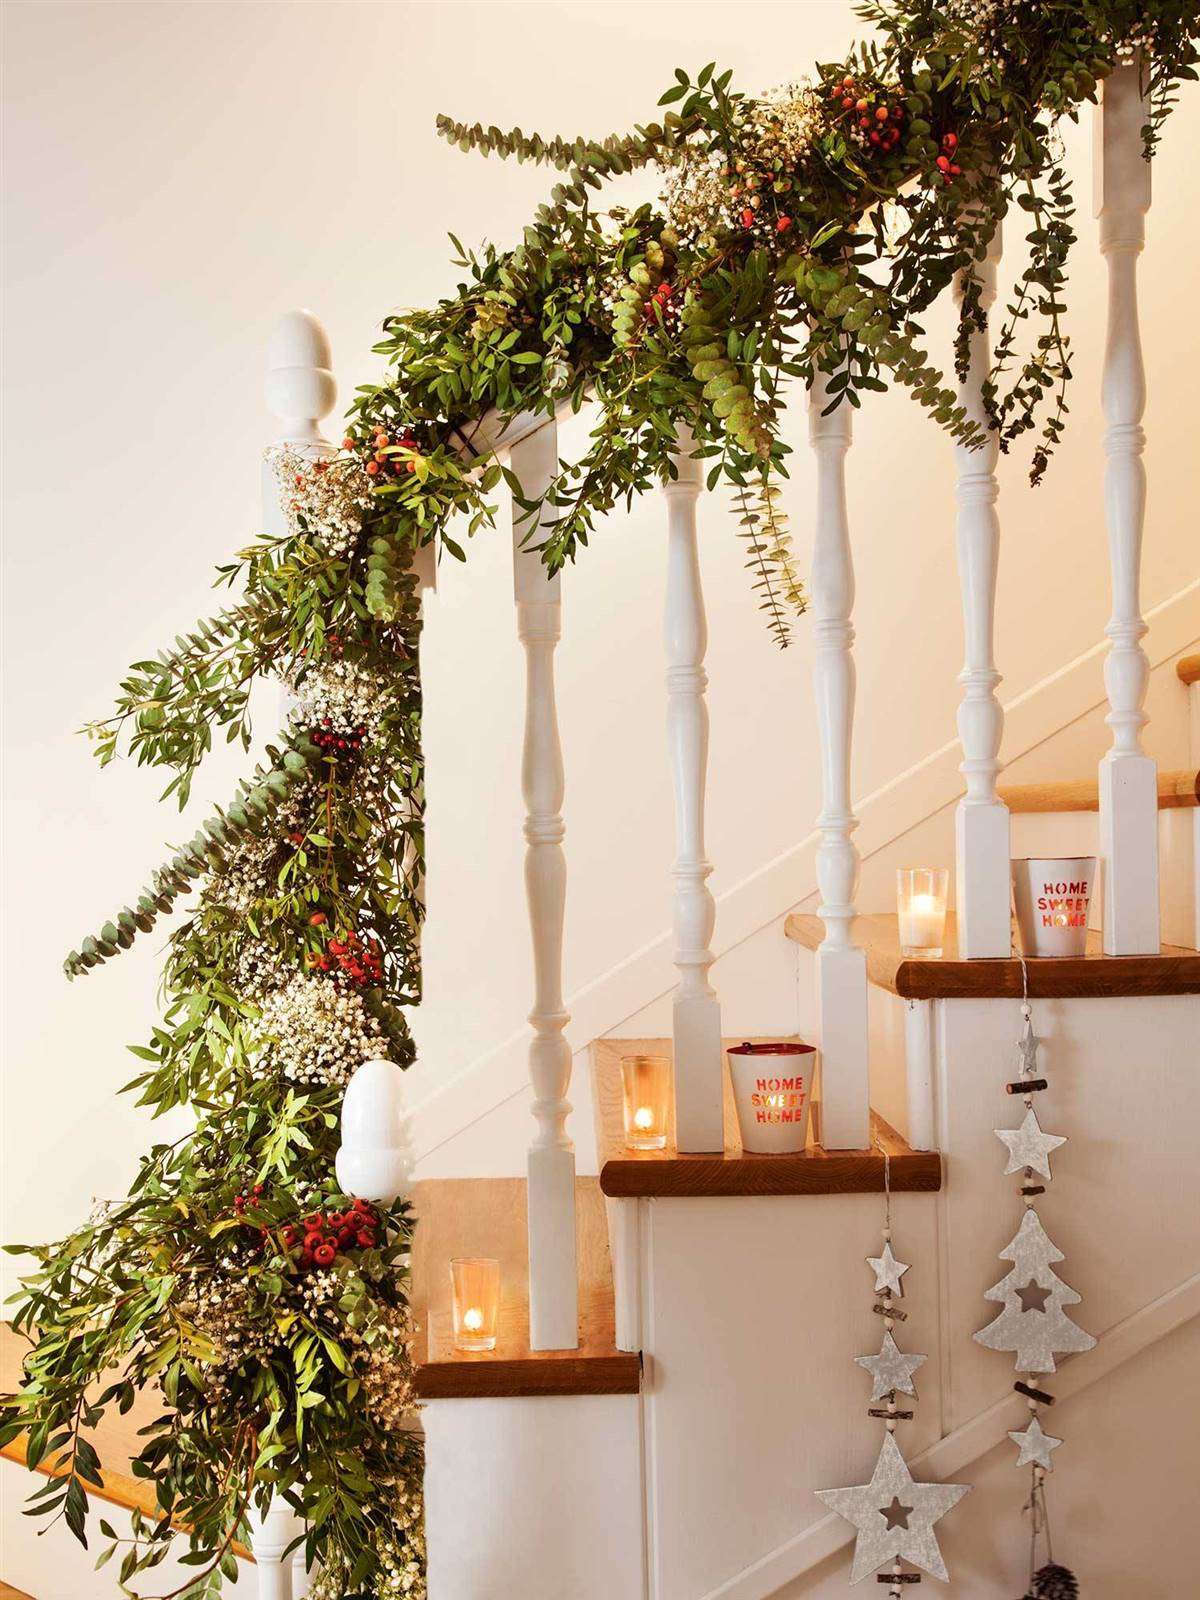 DECORATE THE STAIRCASE WITH A GREEN GARLAND